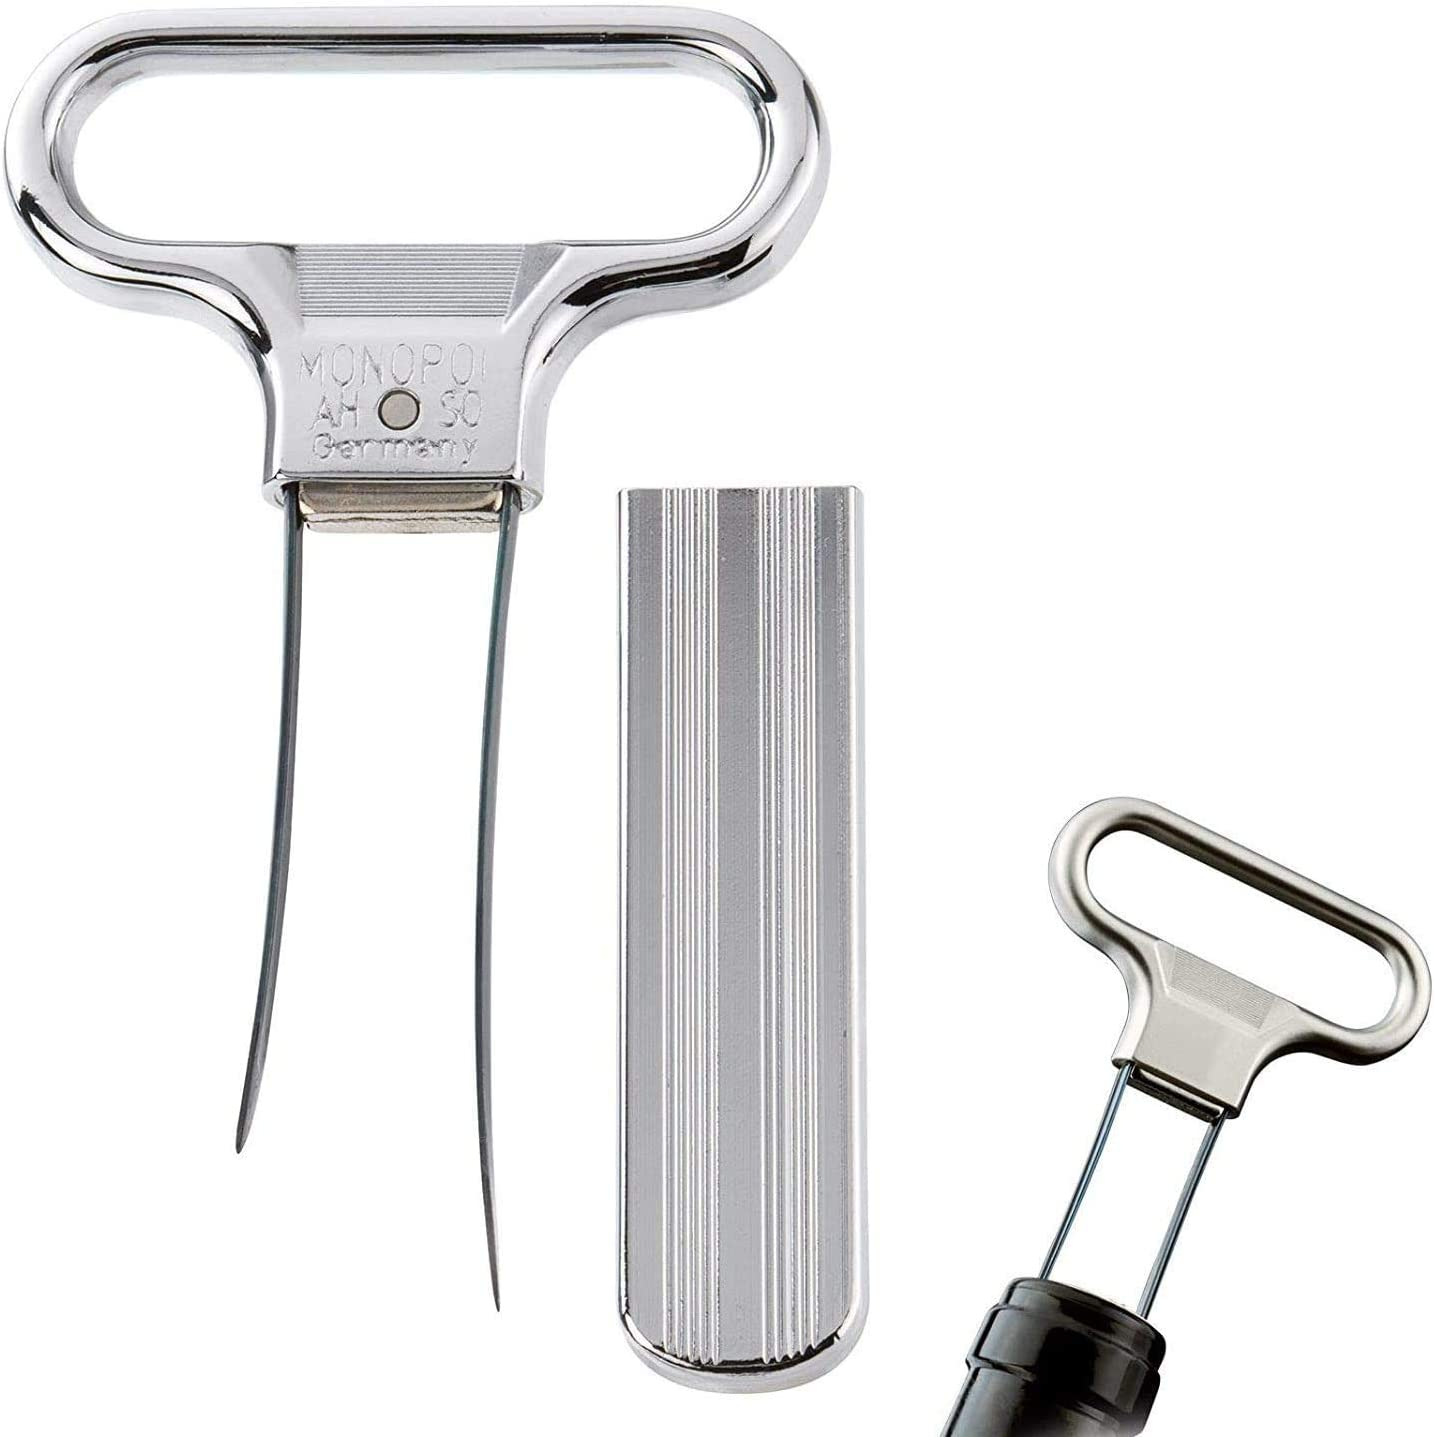 Amazon Com Monopol Two Prong Cork Puller Ah So Waiter S Friend Superfine Polished Satin Finished In Gift Box Made In Germany Pack Of 2 Kitchen Dining